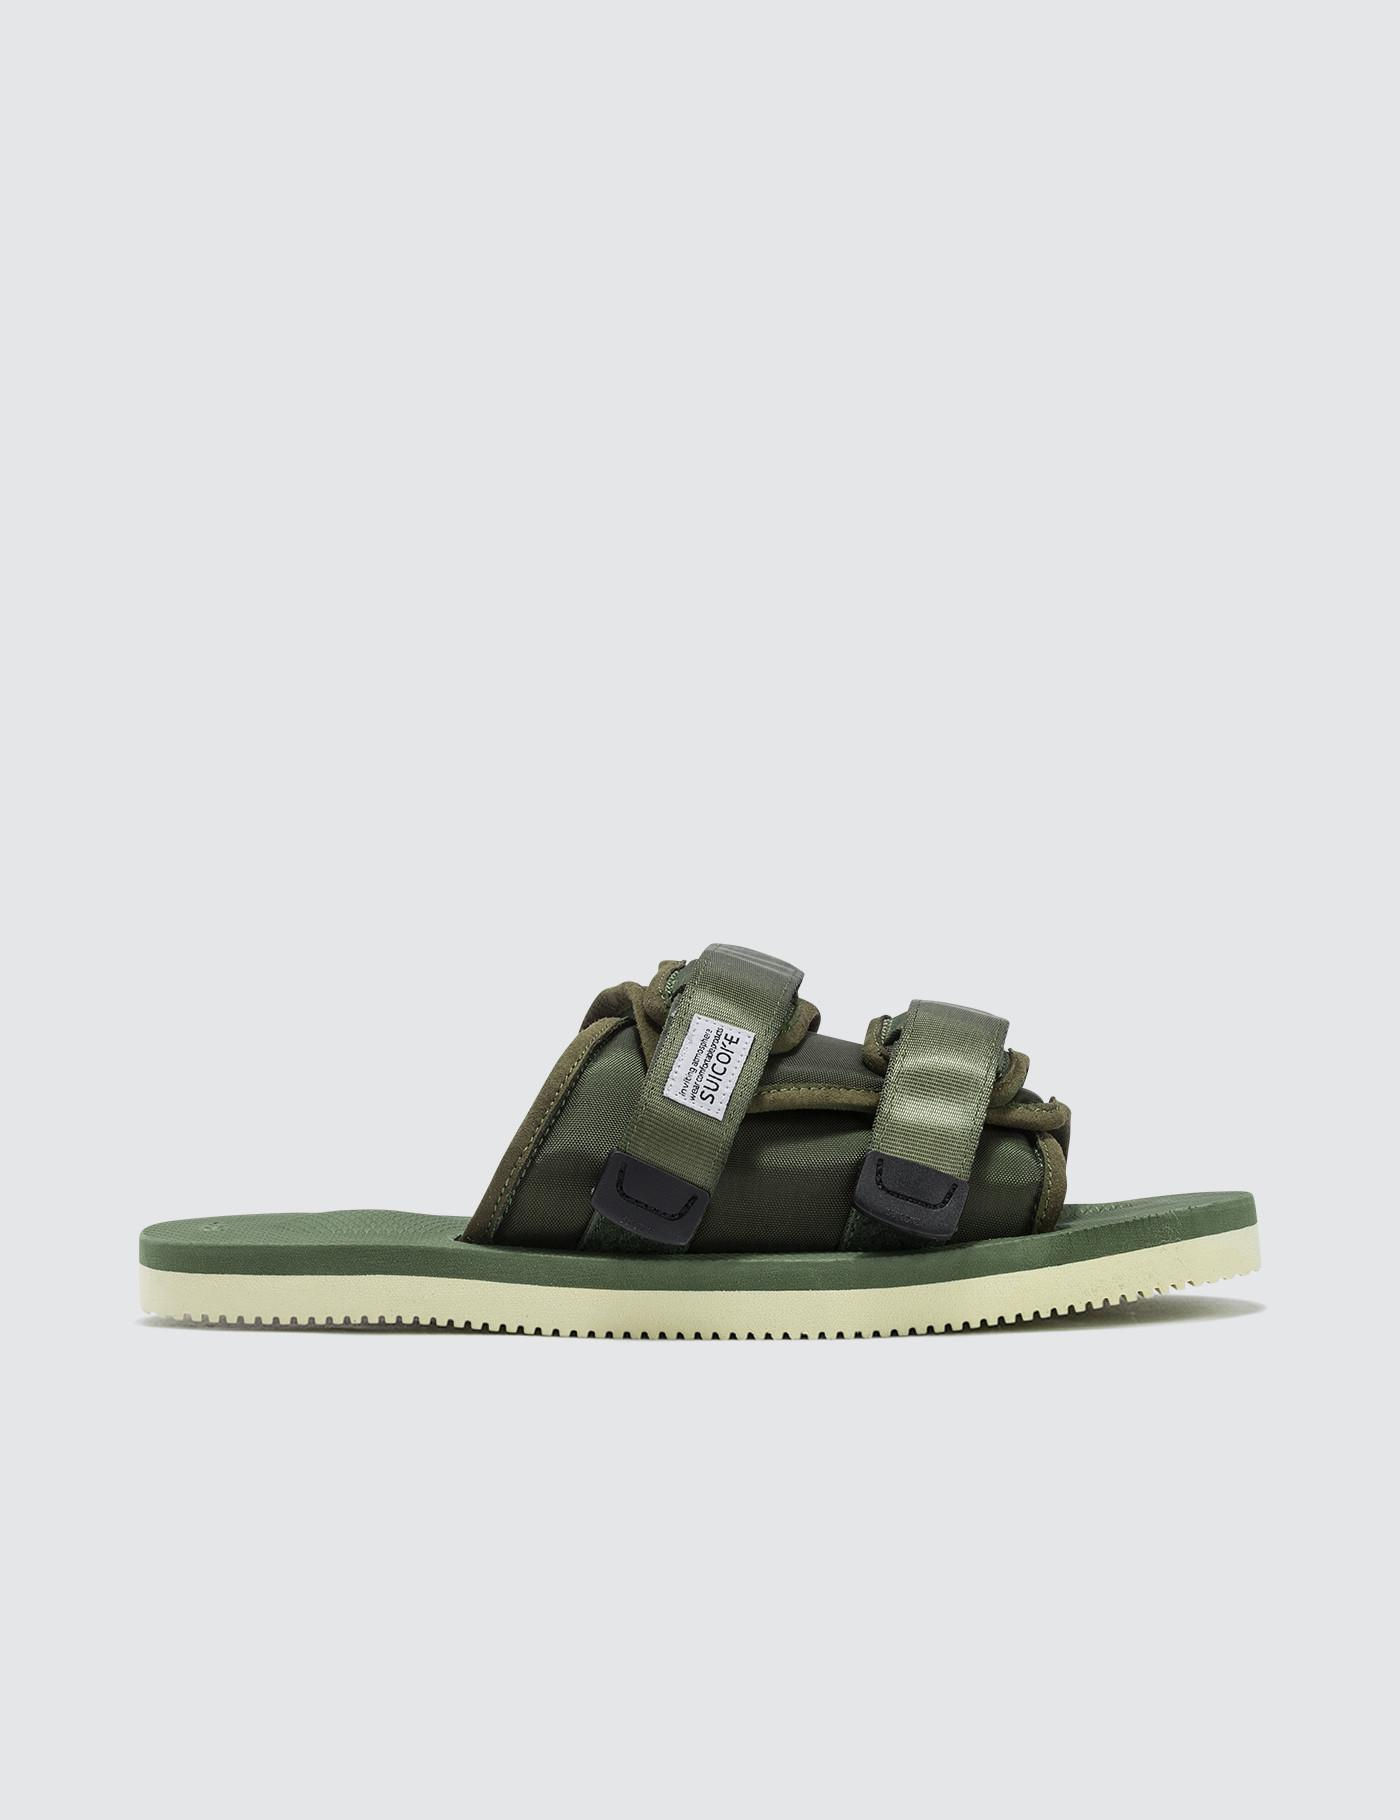 7ae4daca2fa For Sandals Moto Lyst In Cab Suicoke Green Men 4vqXw